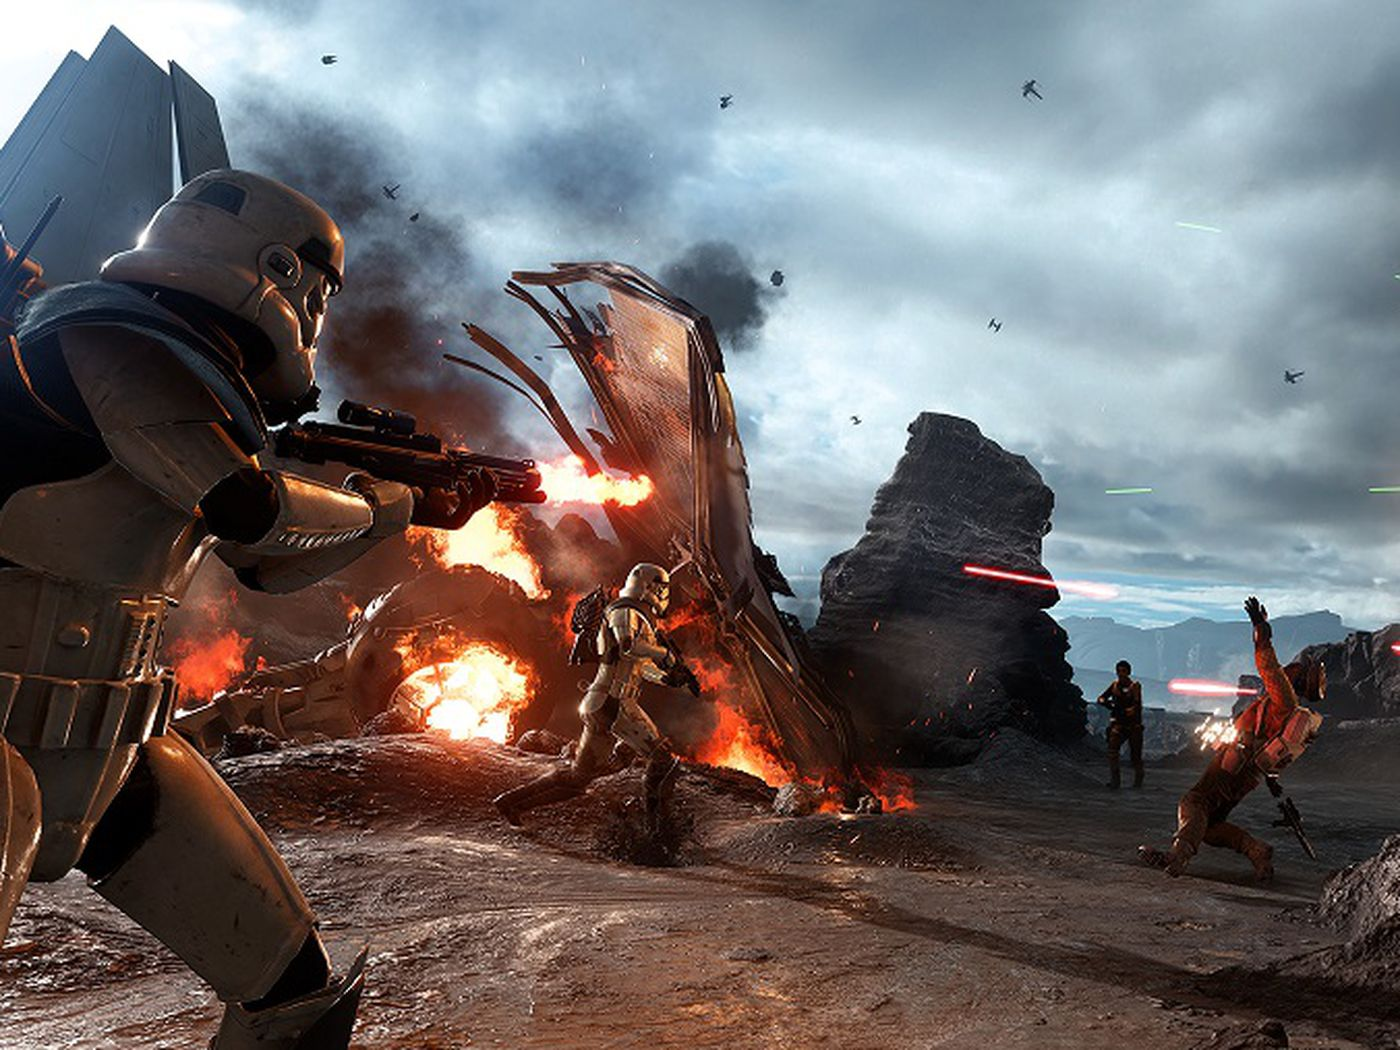 Star Wars Battlefront is perfect for couch co-op - The Verge